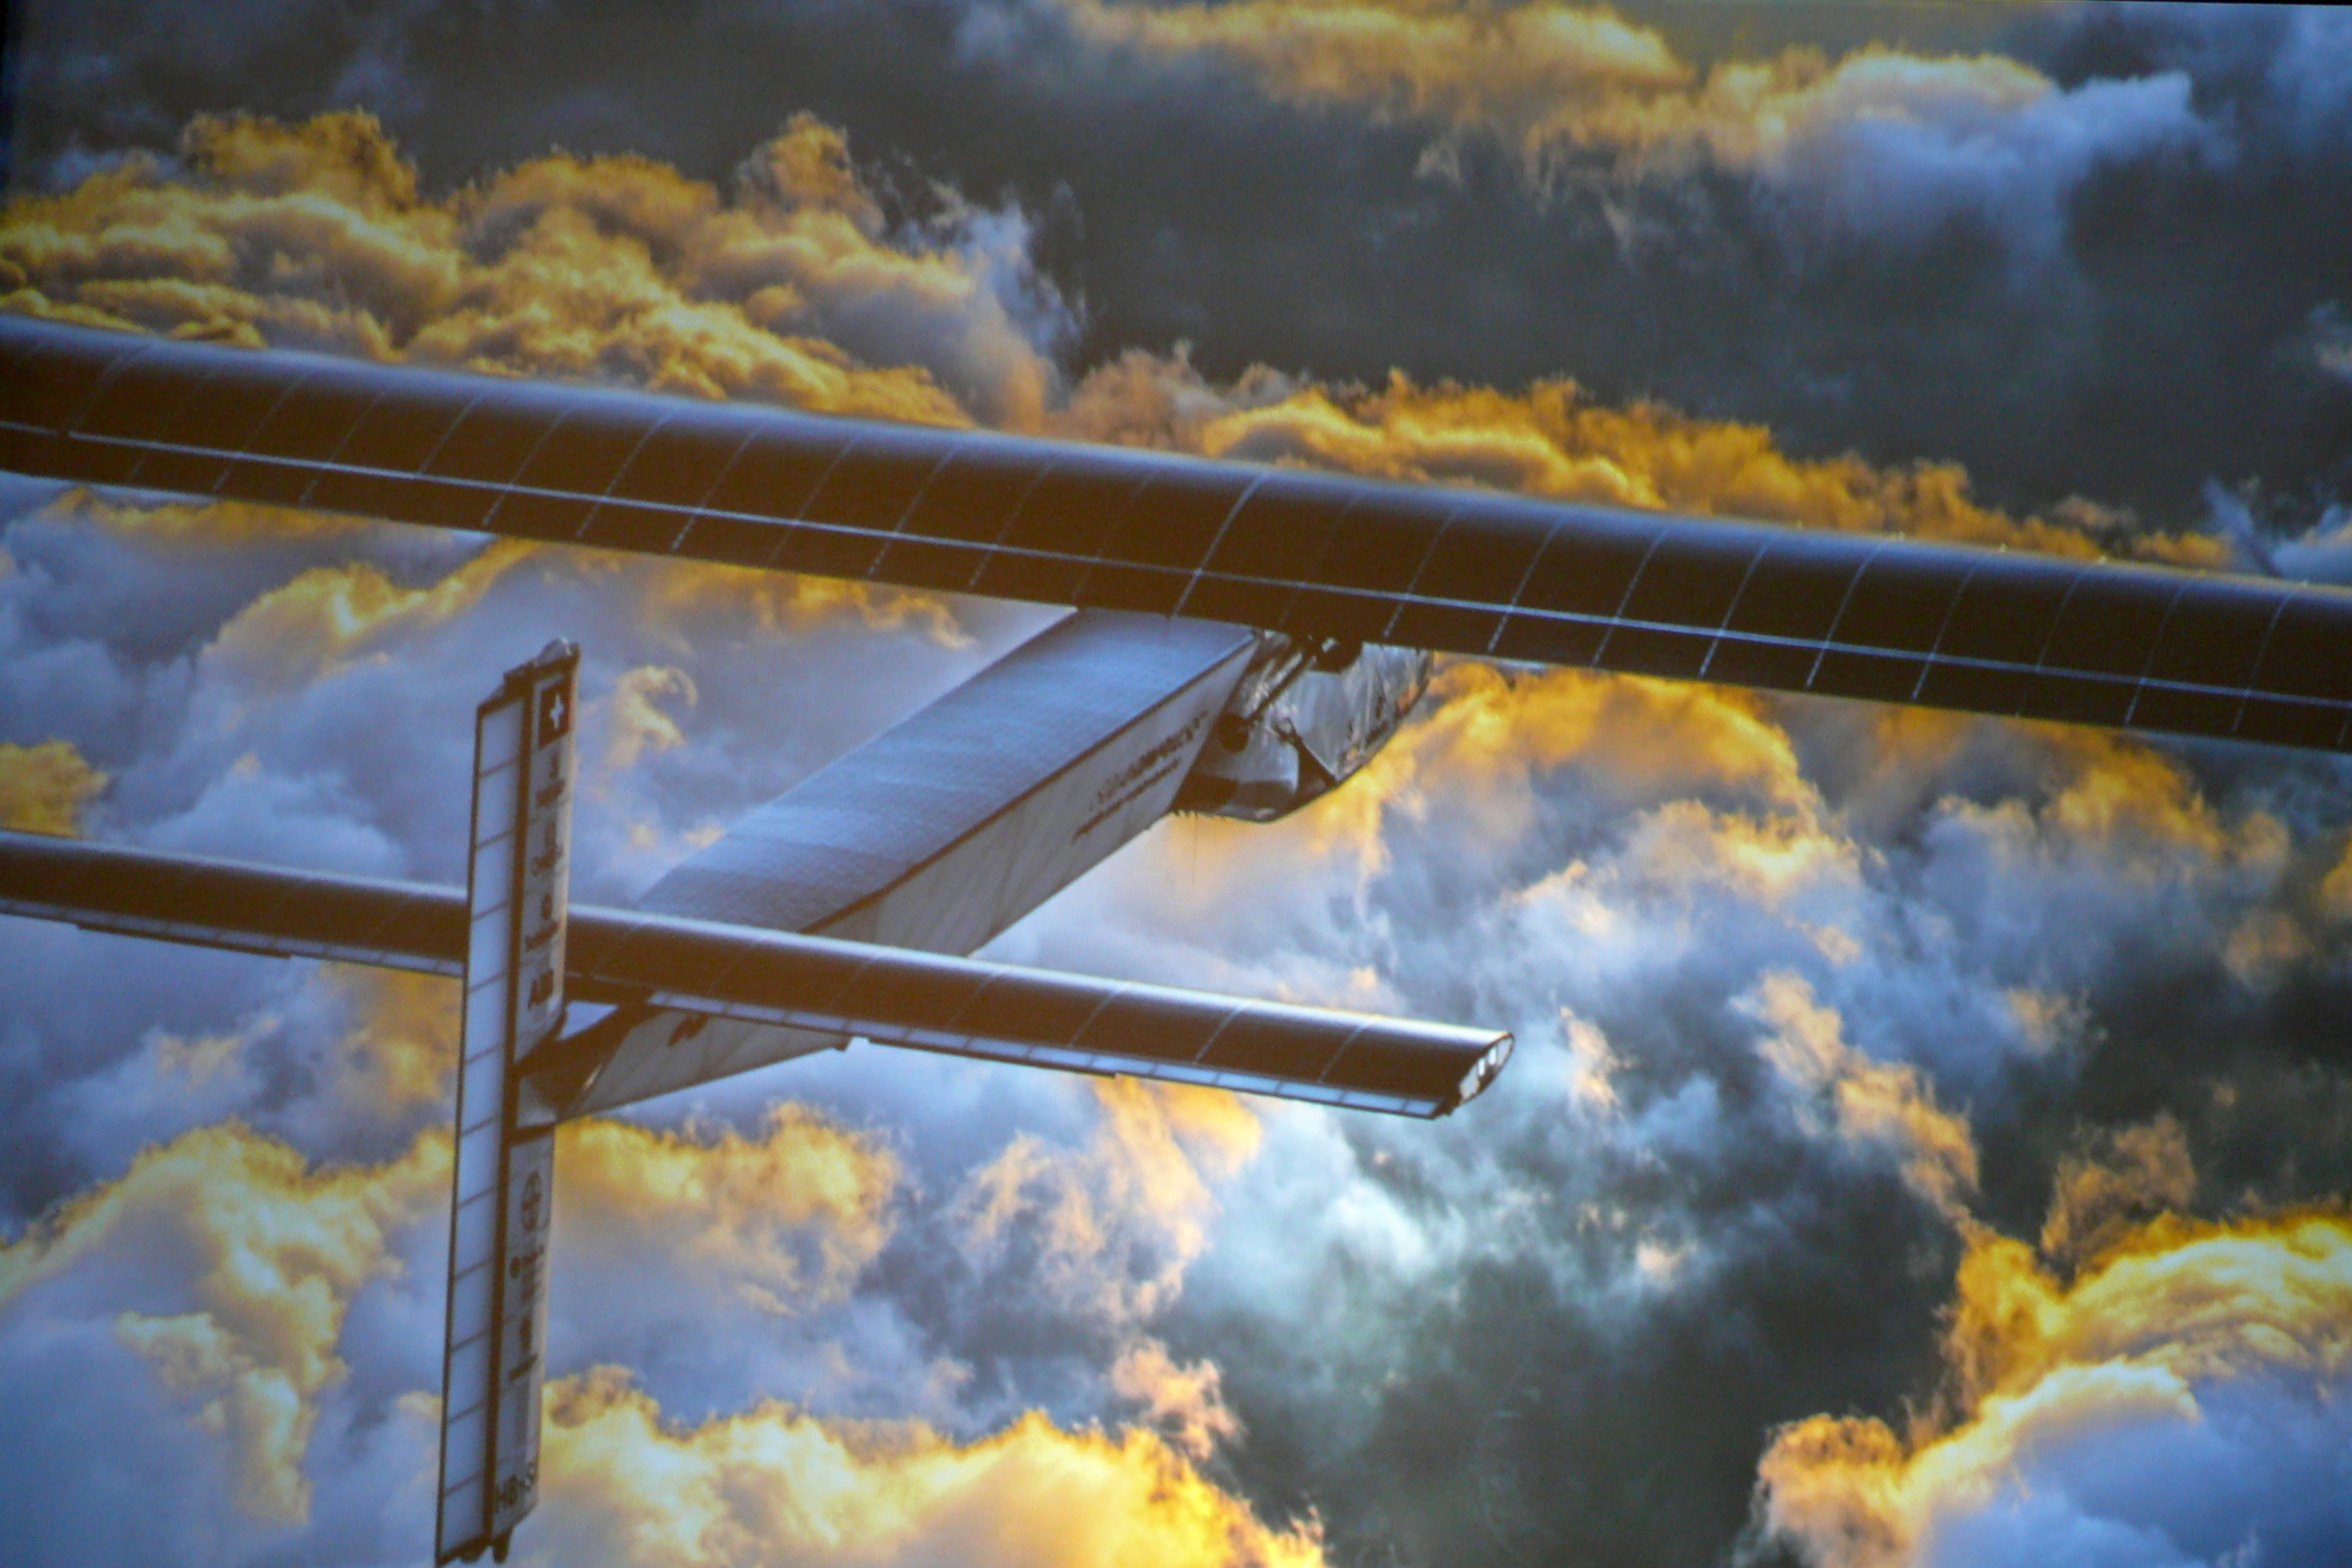 Only a poster can BEST describe the excitement and ecstasy of doing a flight with a solar aircraft. The artist depiction makes the entire enterprise even more exciting and breathtaking.